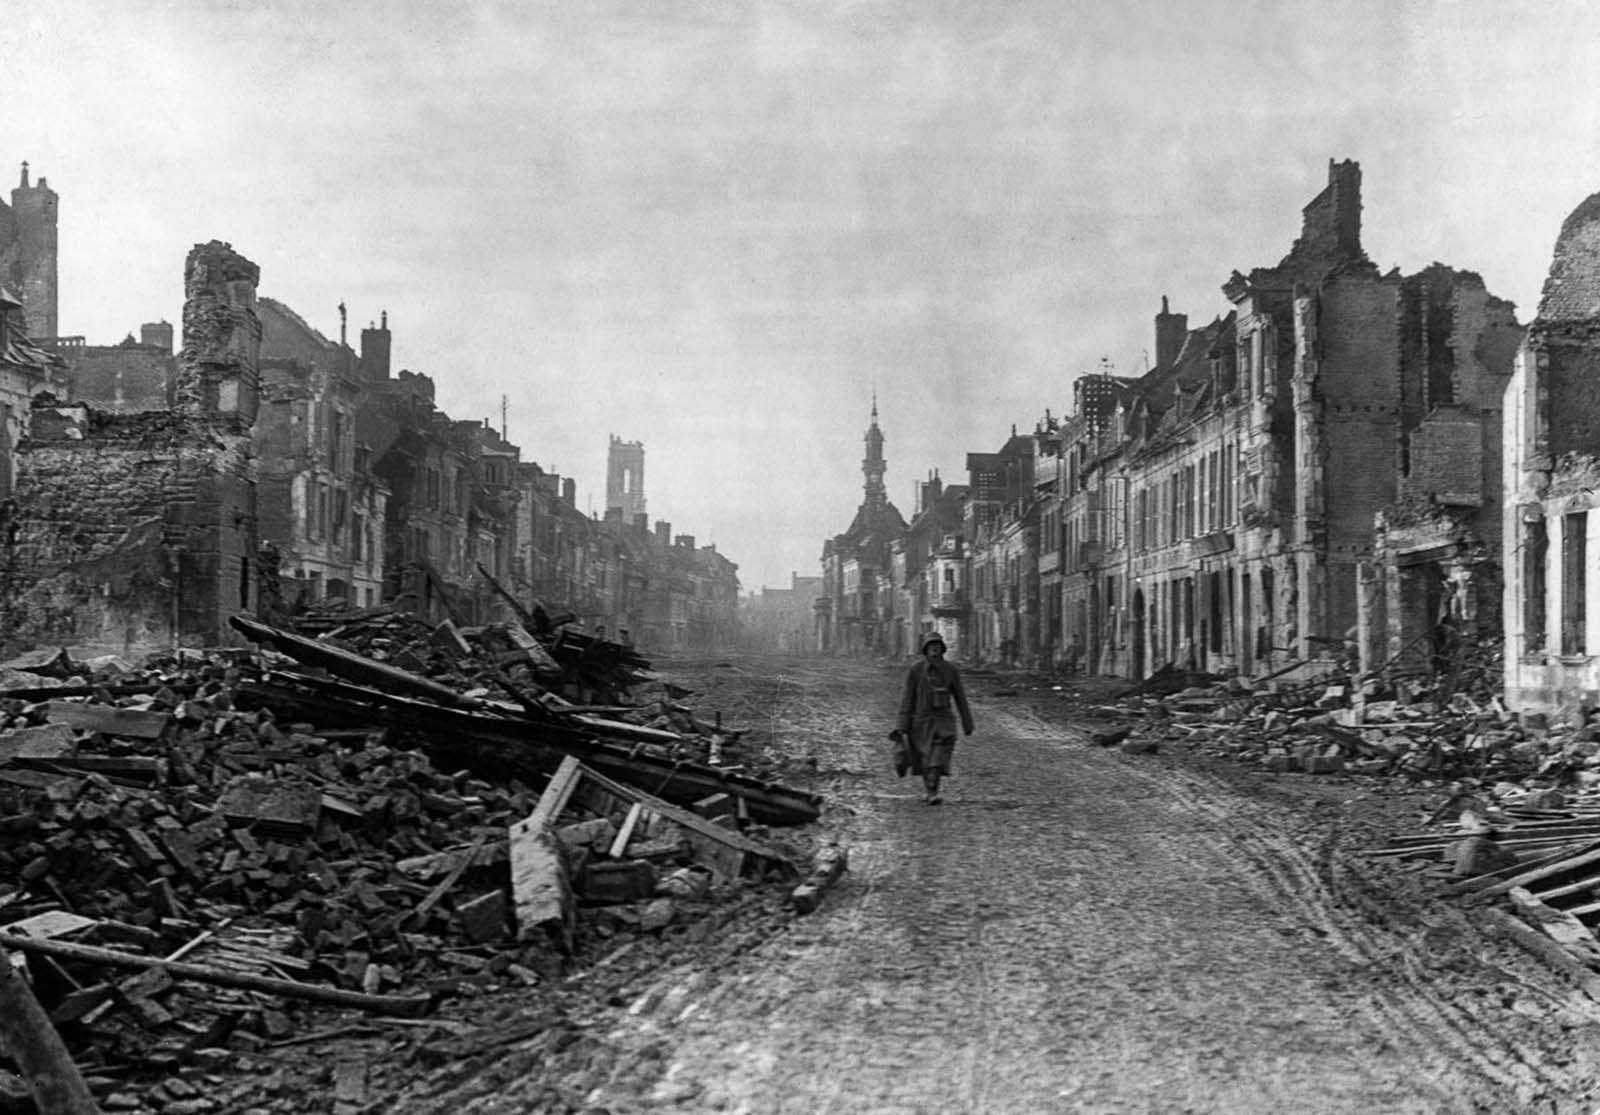 A German soldier walks through the ruined streets of Peronne. November, 1916.